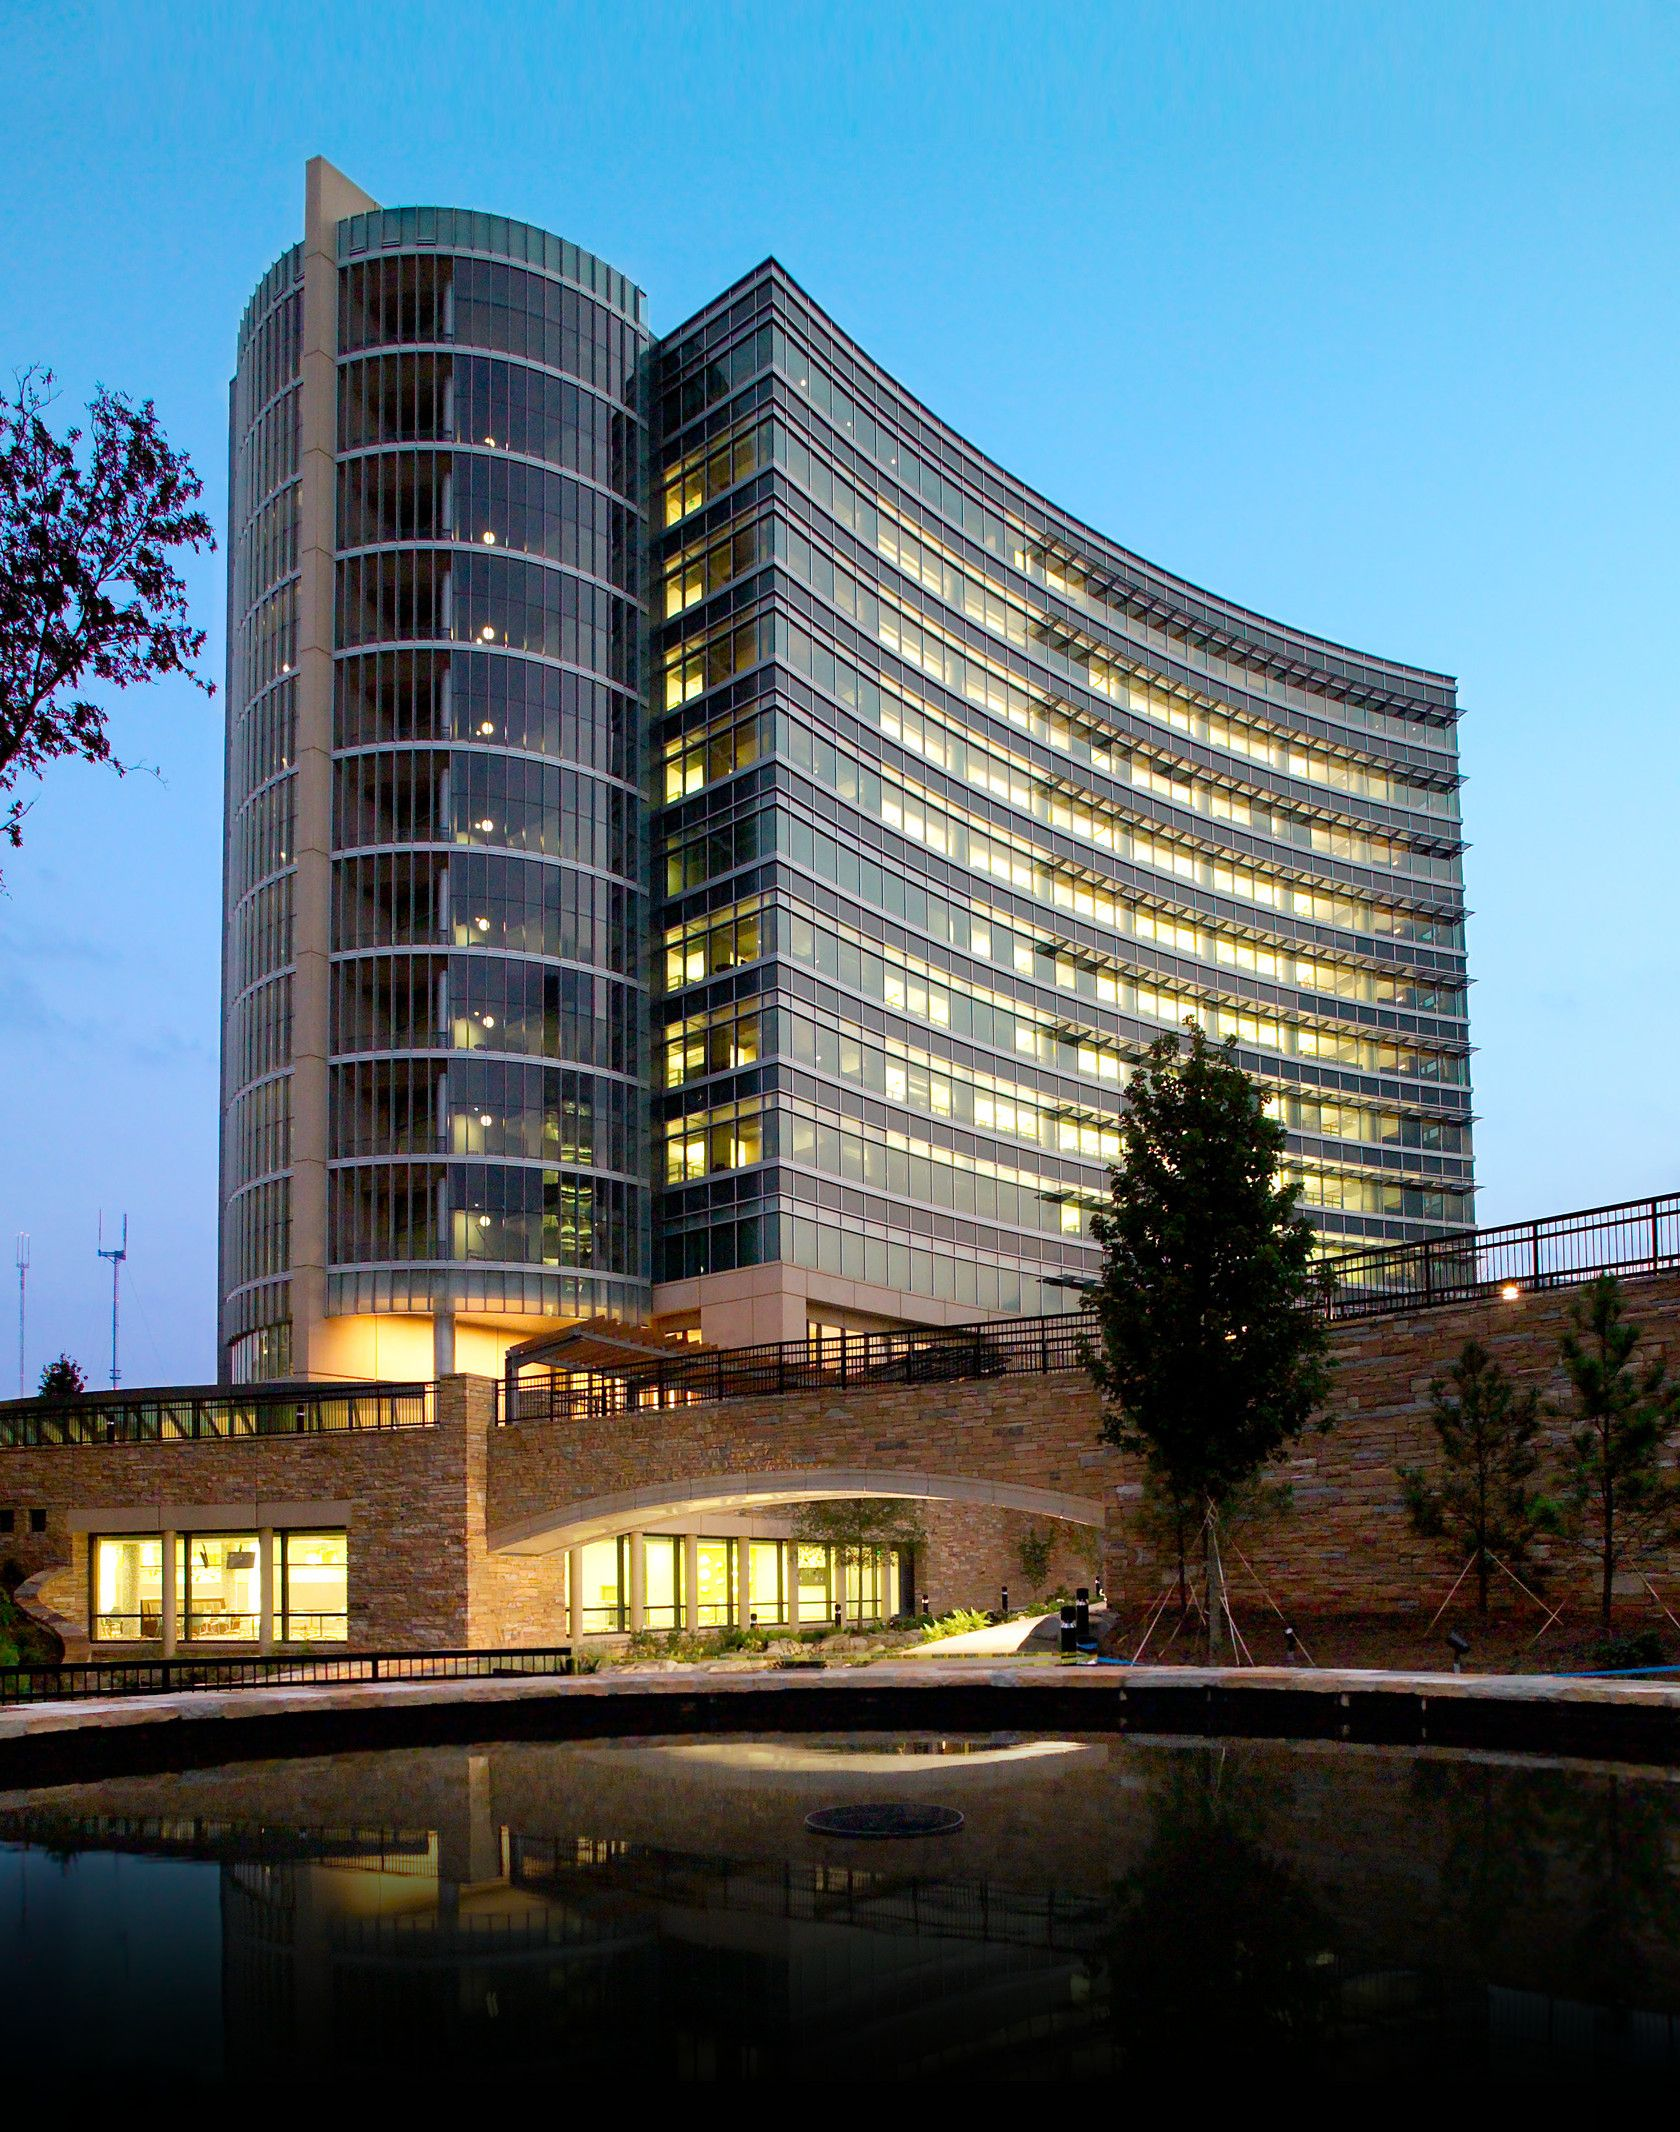 Cdc S Arlen Specter Headquarters And Operations Center In Atlanta Ga Leed Bd C Nc Silver Certified 2006 Building Light Pollution Leed